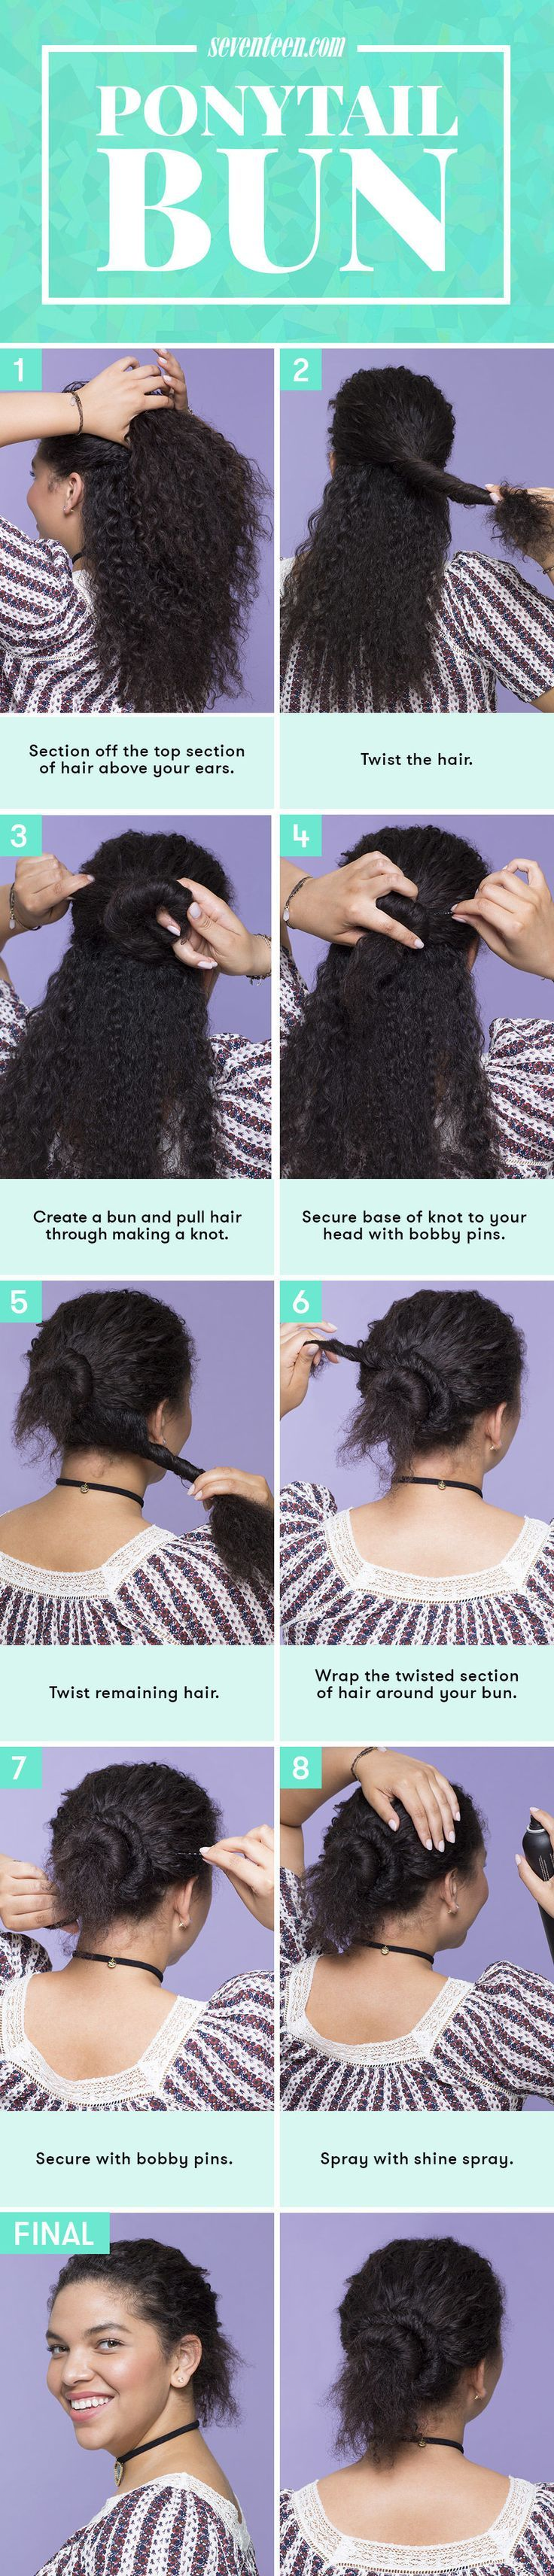 7 No-Heat Hairstyles Every Lazy Girl Needs This Summer - Seventeen.com